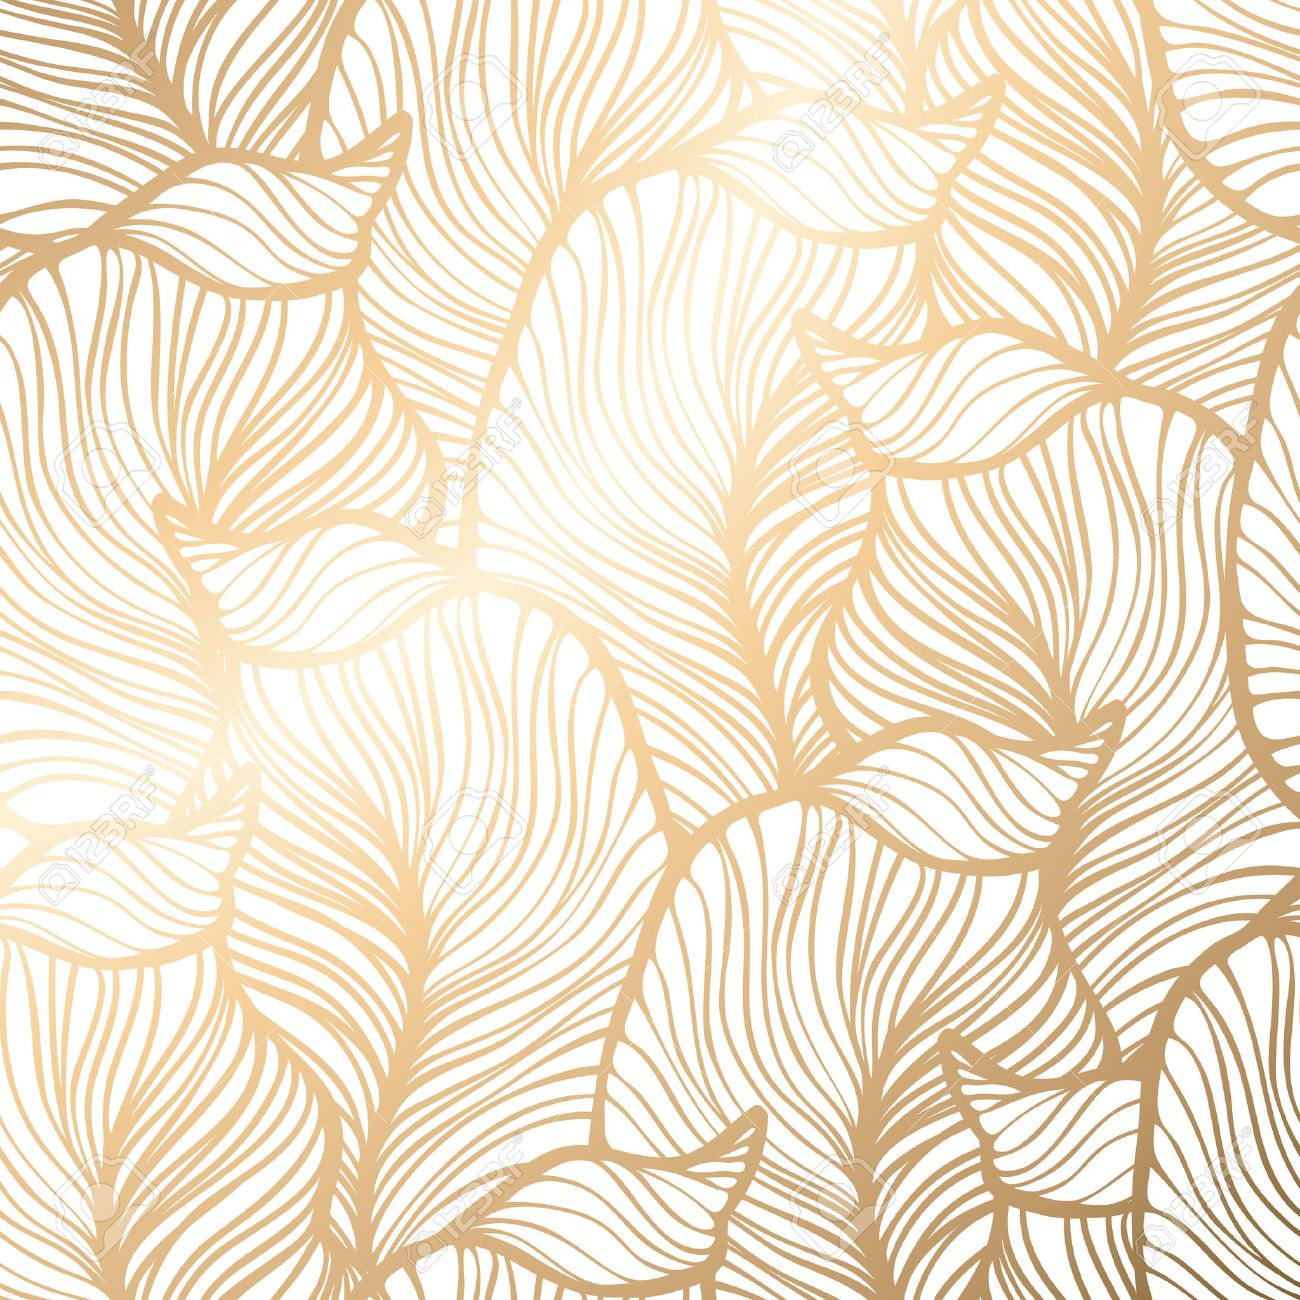 Damask Seamless Floral Pattern Royal Wallpaper Vector Illustration EPS 10 Gold Leaf